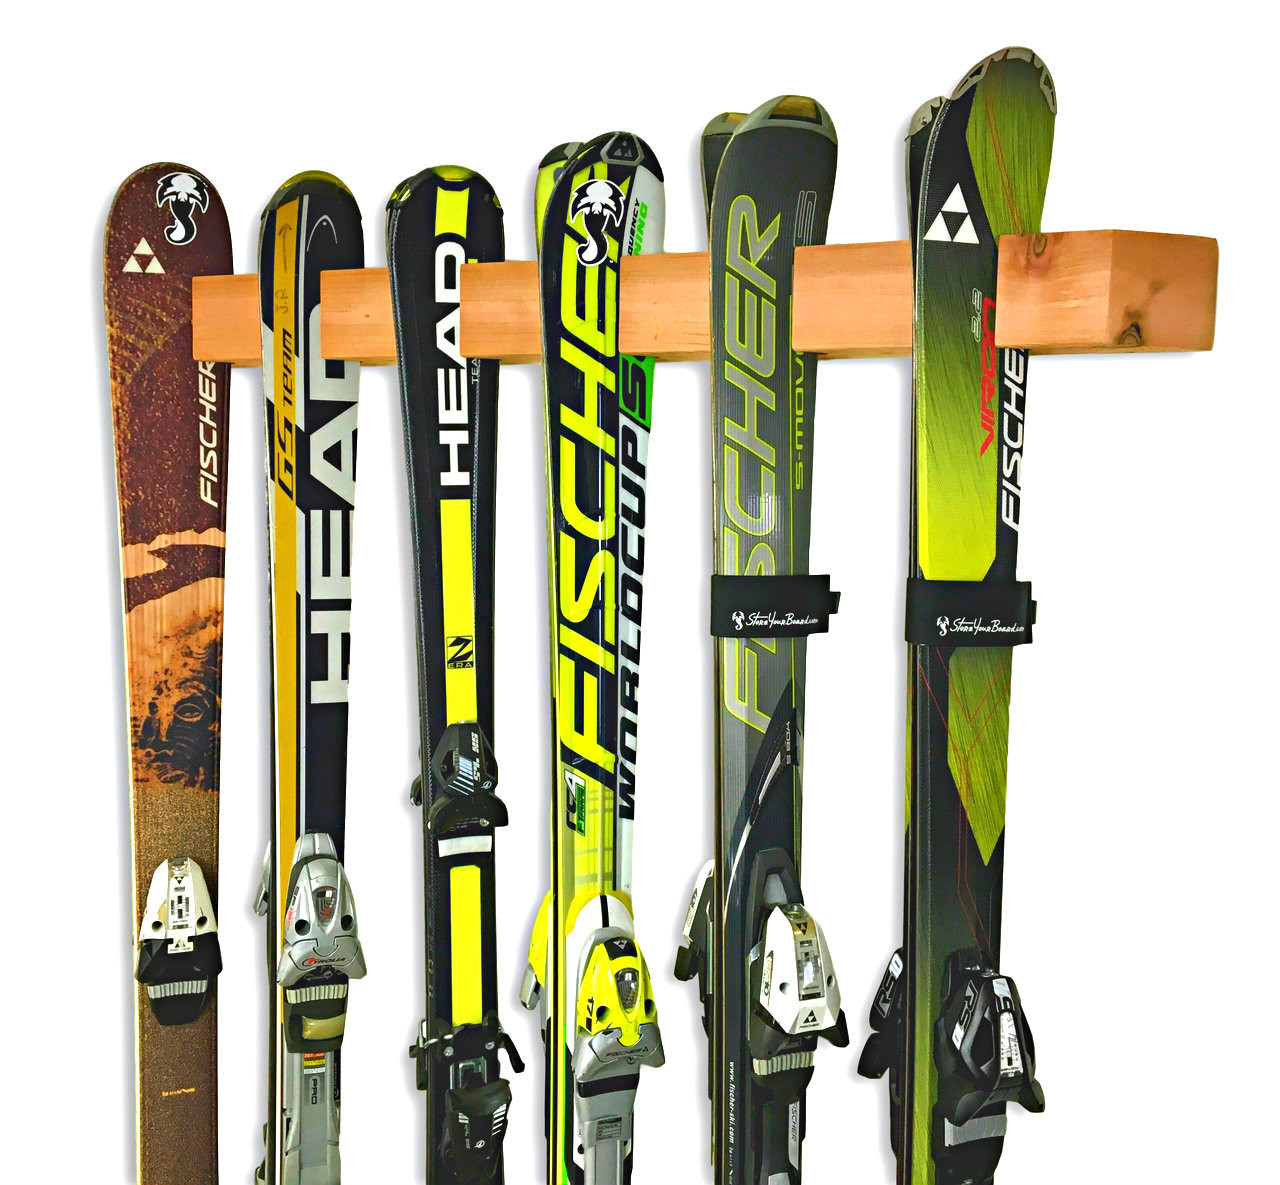 Handcrafted Vertical Cedar Wall Rack   Holds up to 6 Pairs of Skis